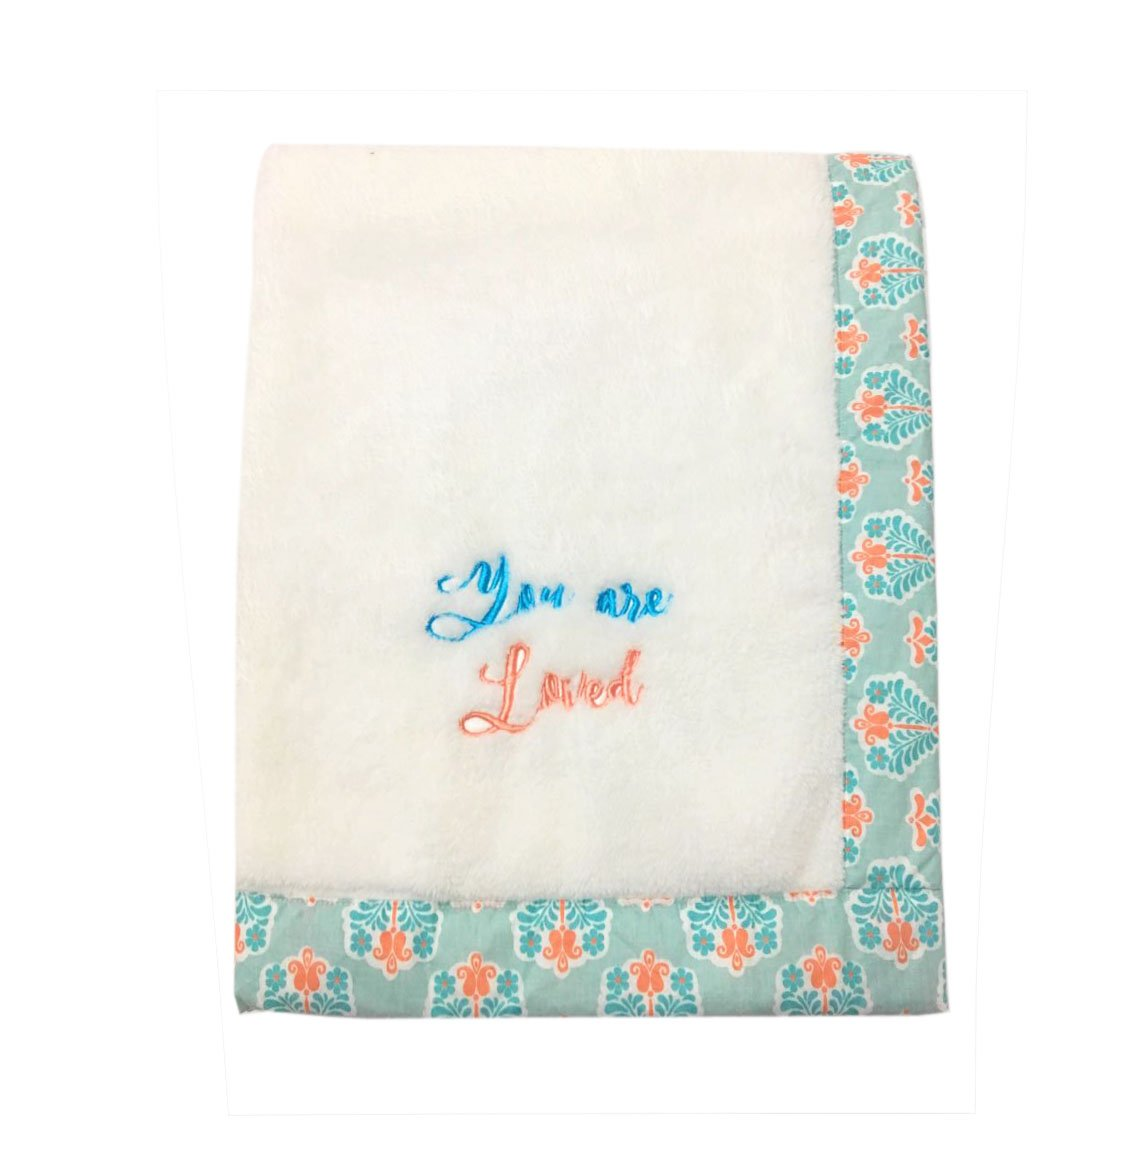 Bacati - Paisley Floral Plush Embroidered 30 x 40 inches Baby Blanket (Aqua/Coral Floret White)